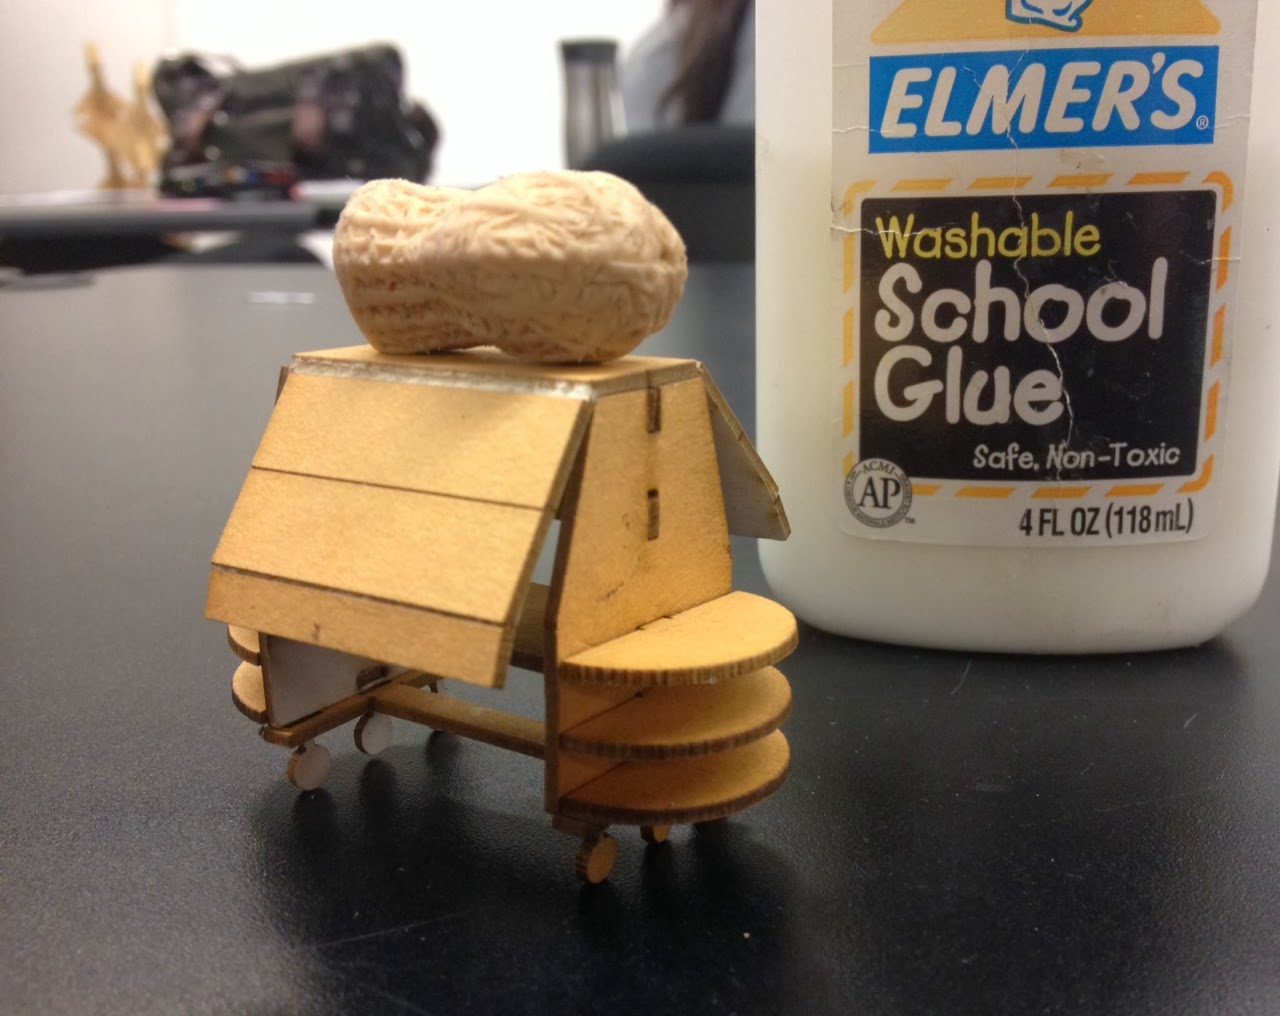 Image shows side view of a wooden miniature kiosk model with a peanut eraser on top and Elmer's glue next to it.